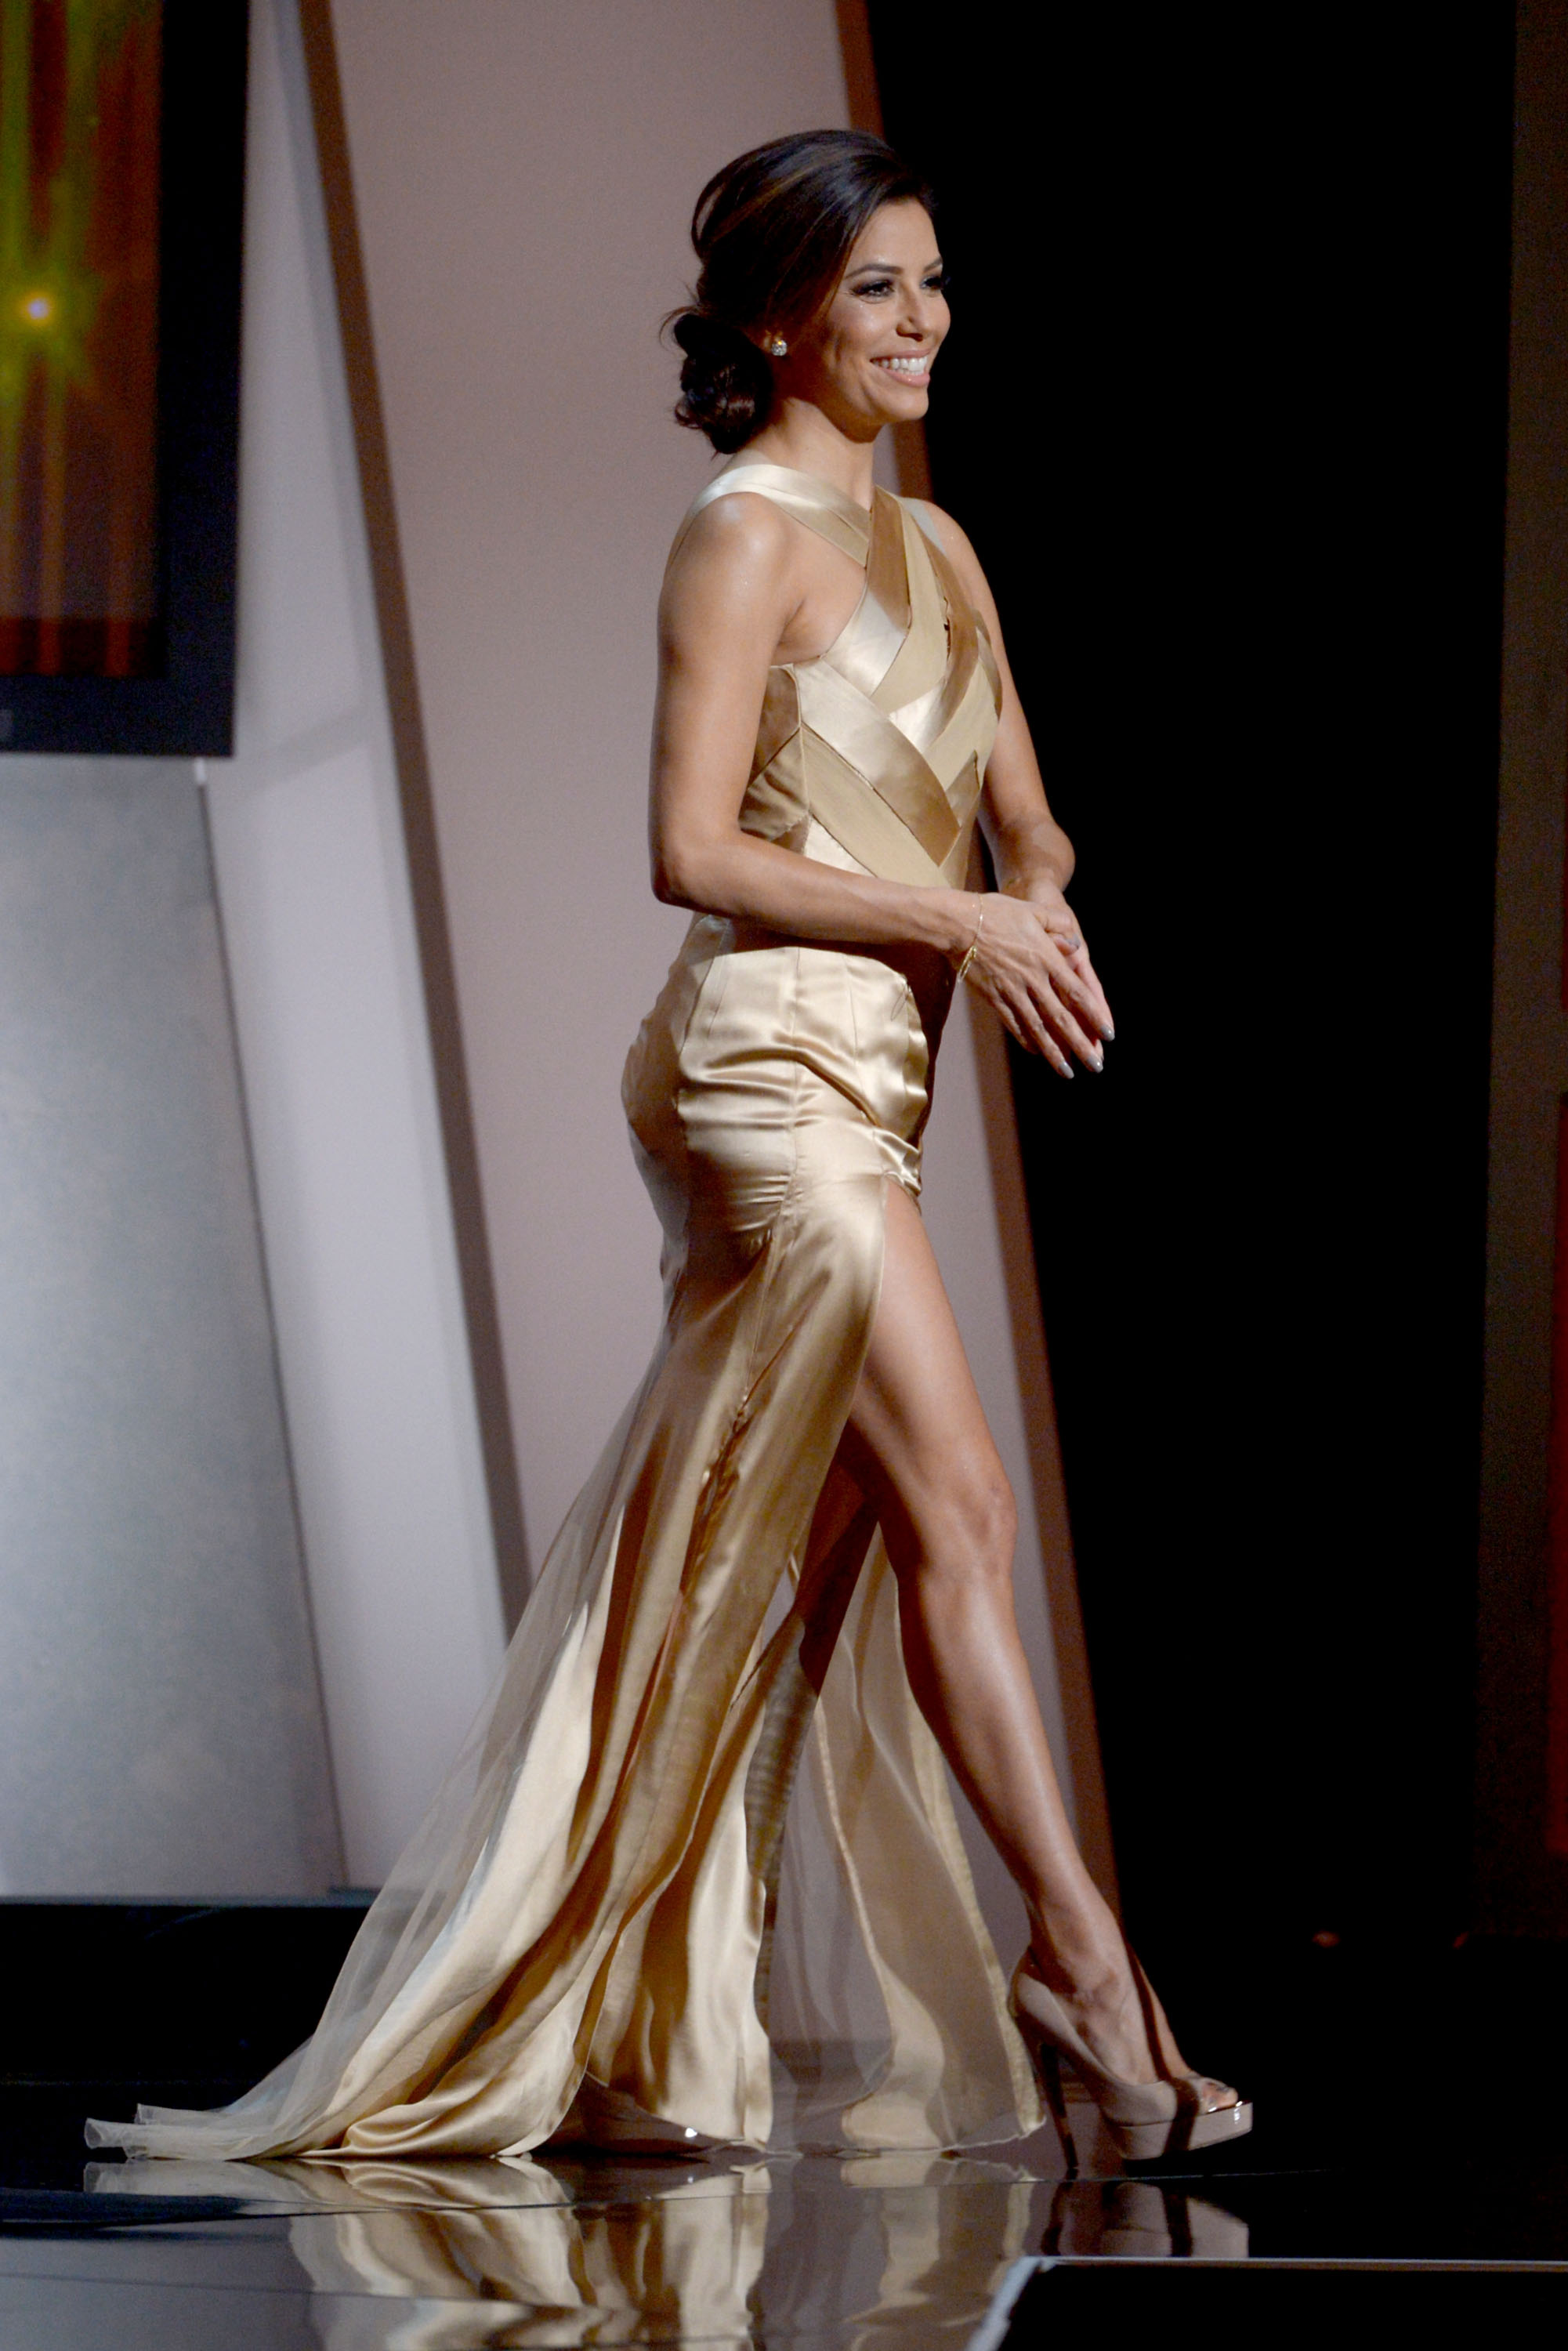 Eva Longoria changed into a champagne-colored gown at the ALMA Awards in LA.